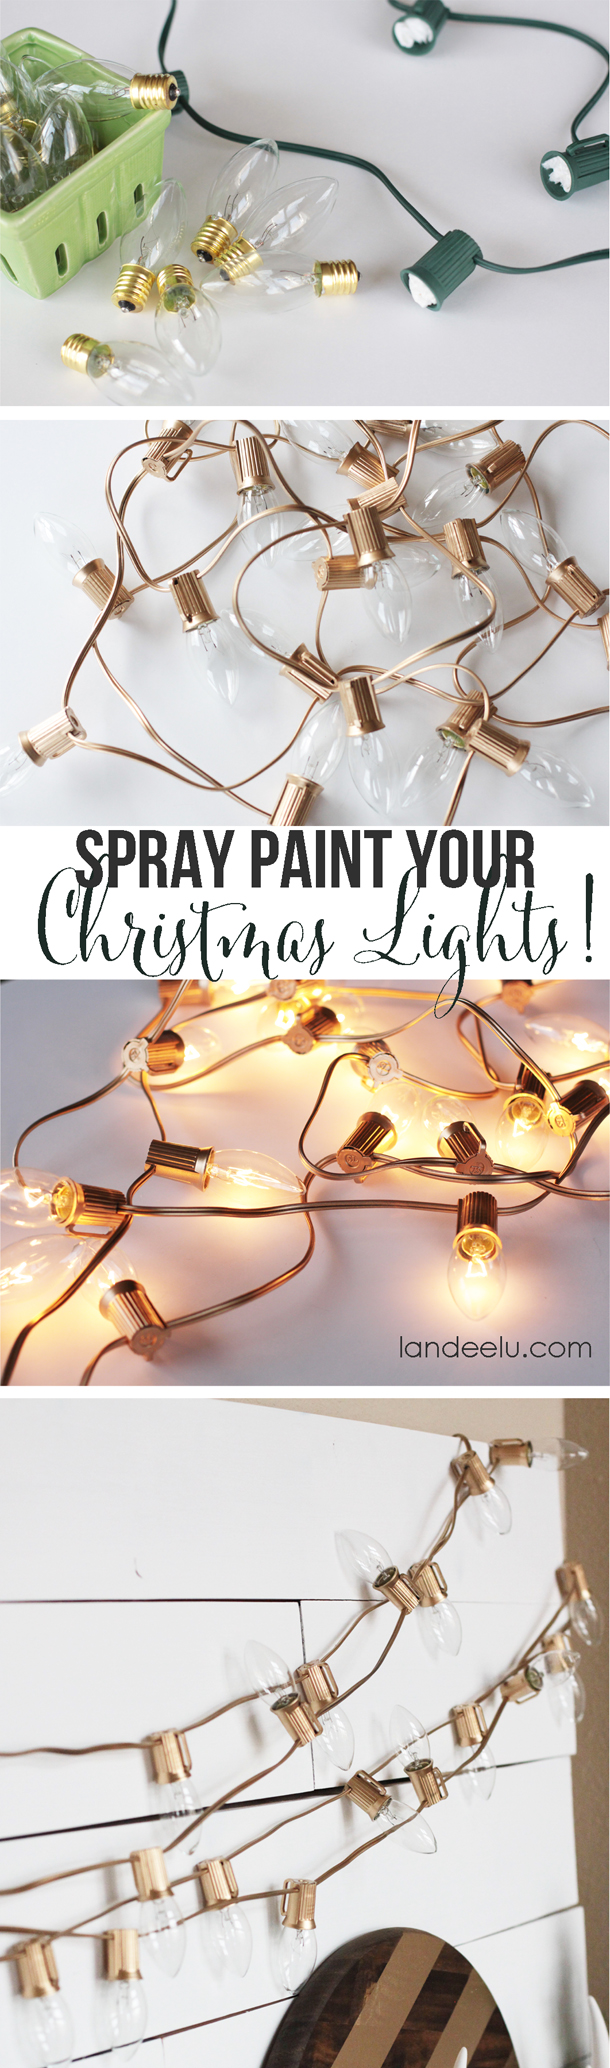 Spray-Paint-Christmas-Lights